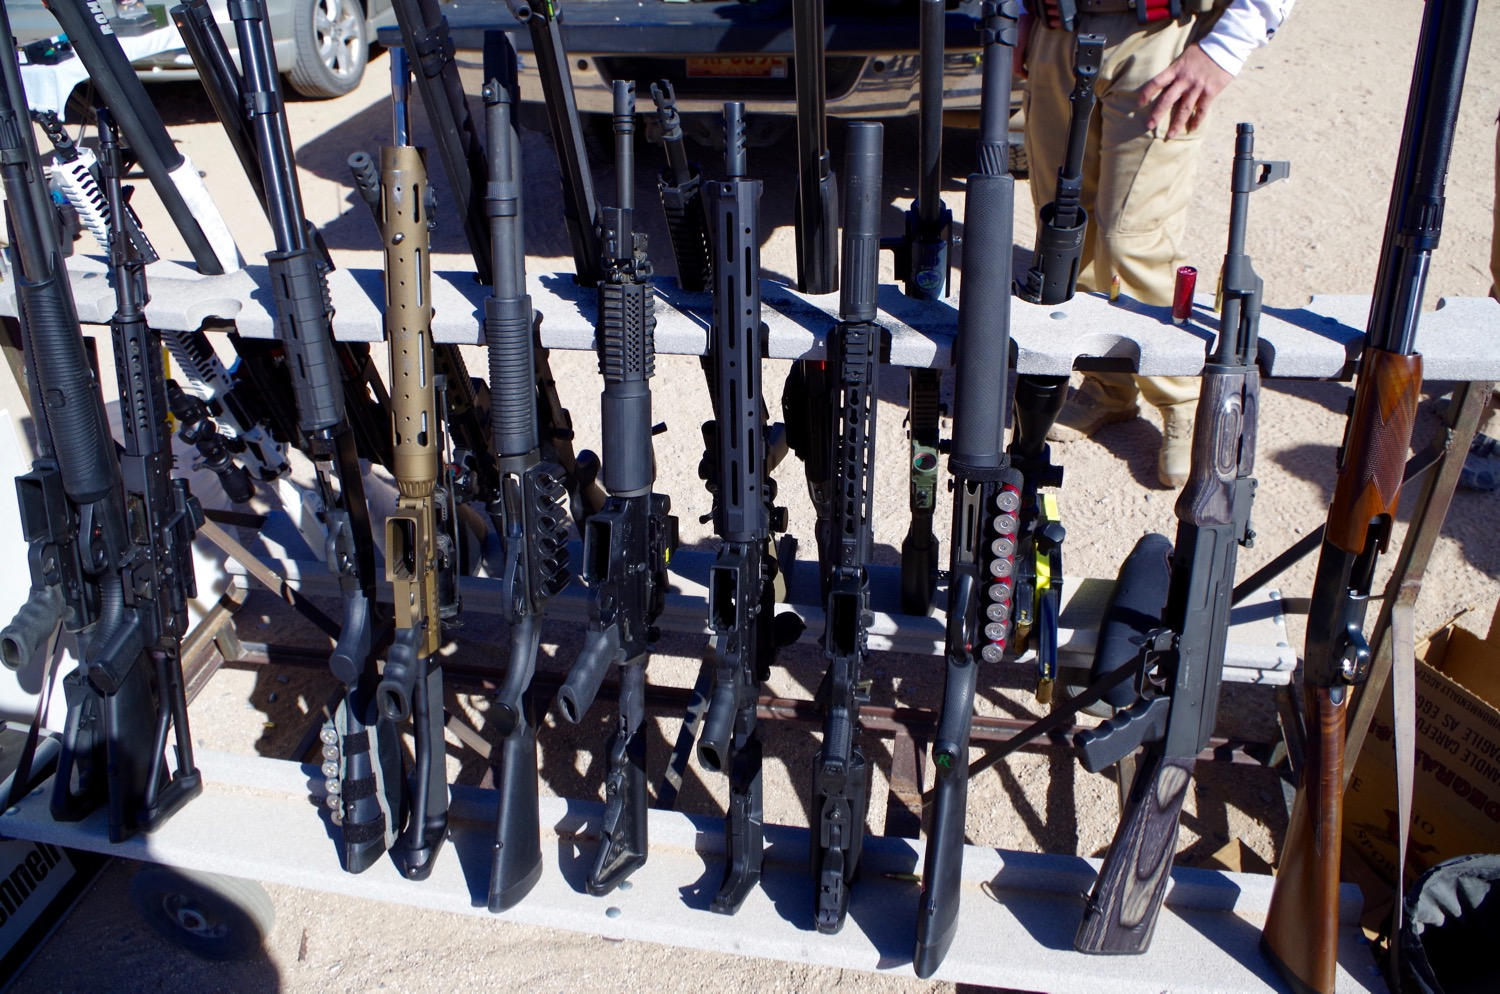 Nestled in among the other rifles at the match.